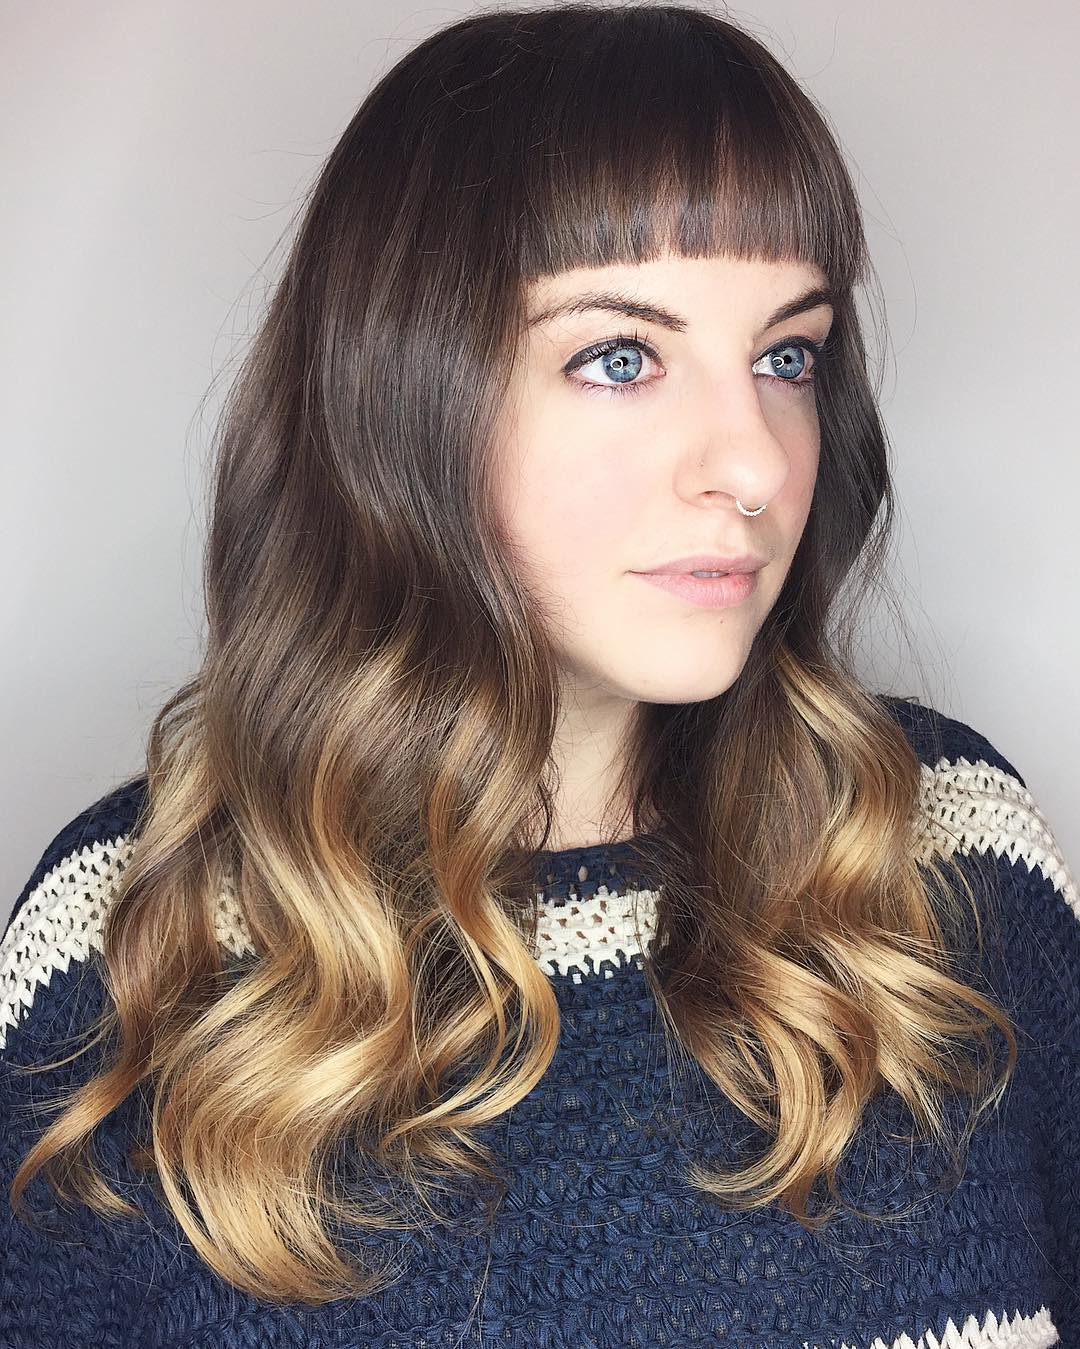 bangs hairstyles 2018 chrisweberhair light straight across fringe